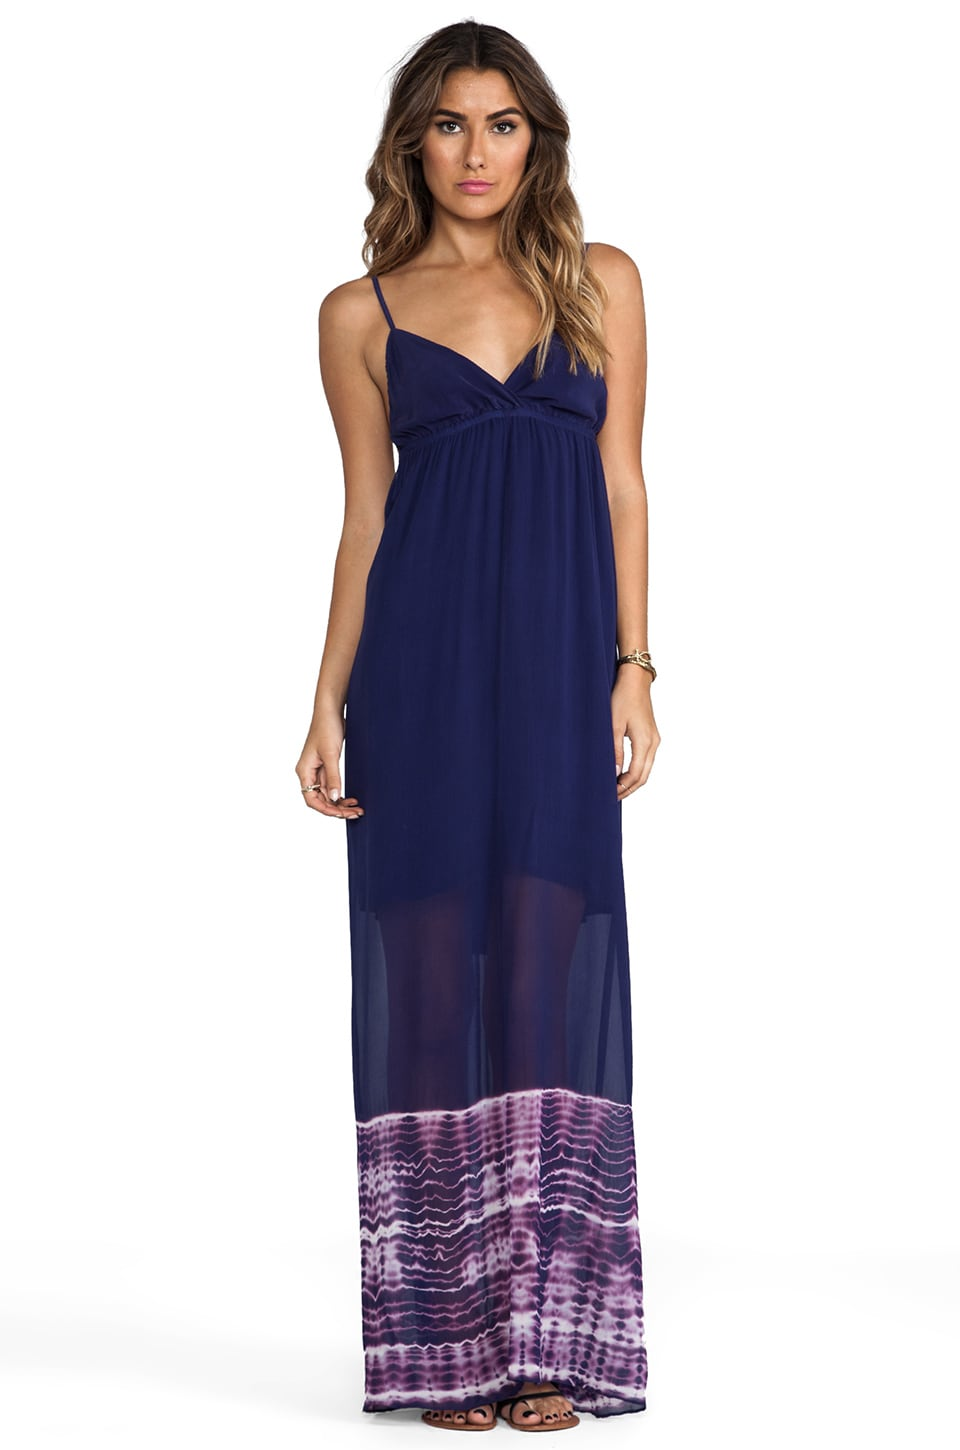 Gypsy 05 Foundation Spaghetti Alligator Maxi Dress in Midnight